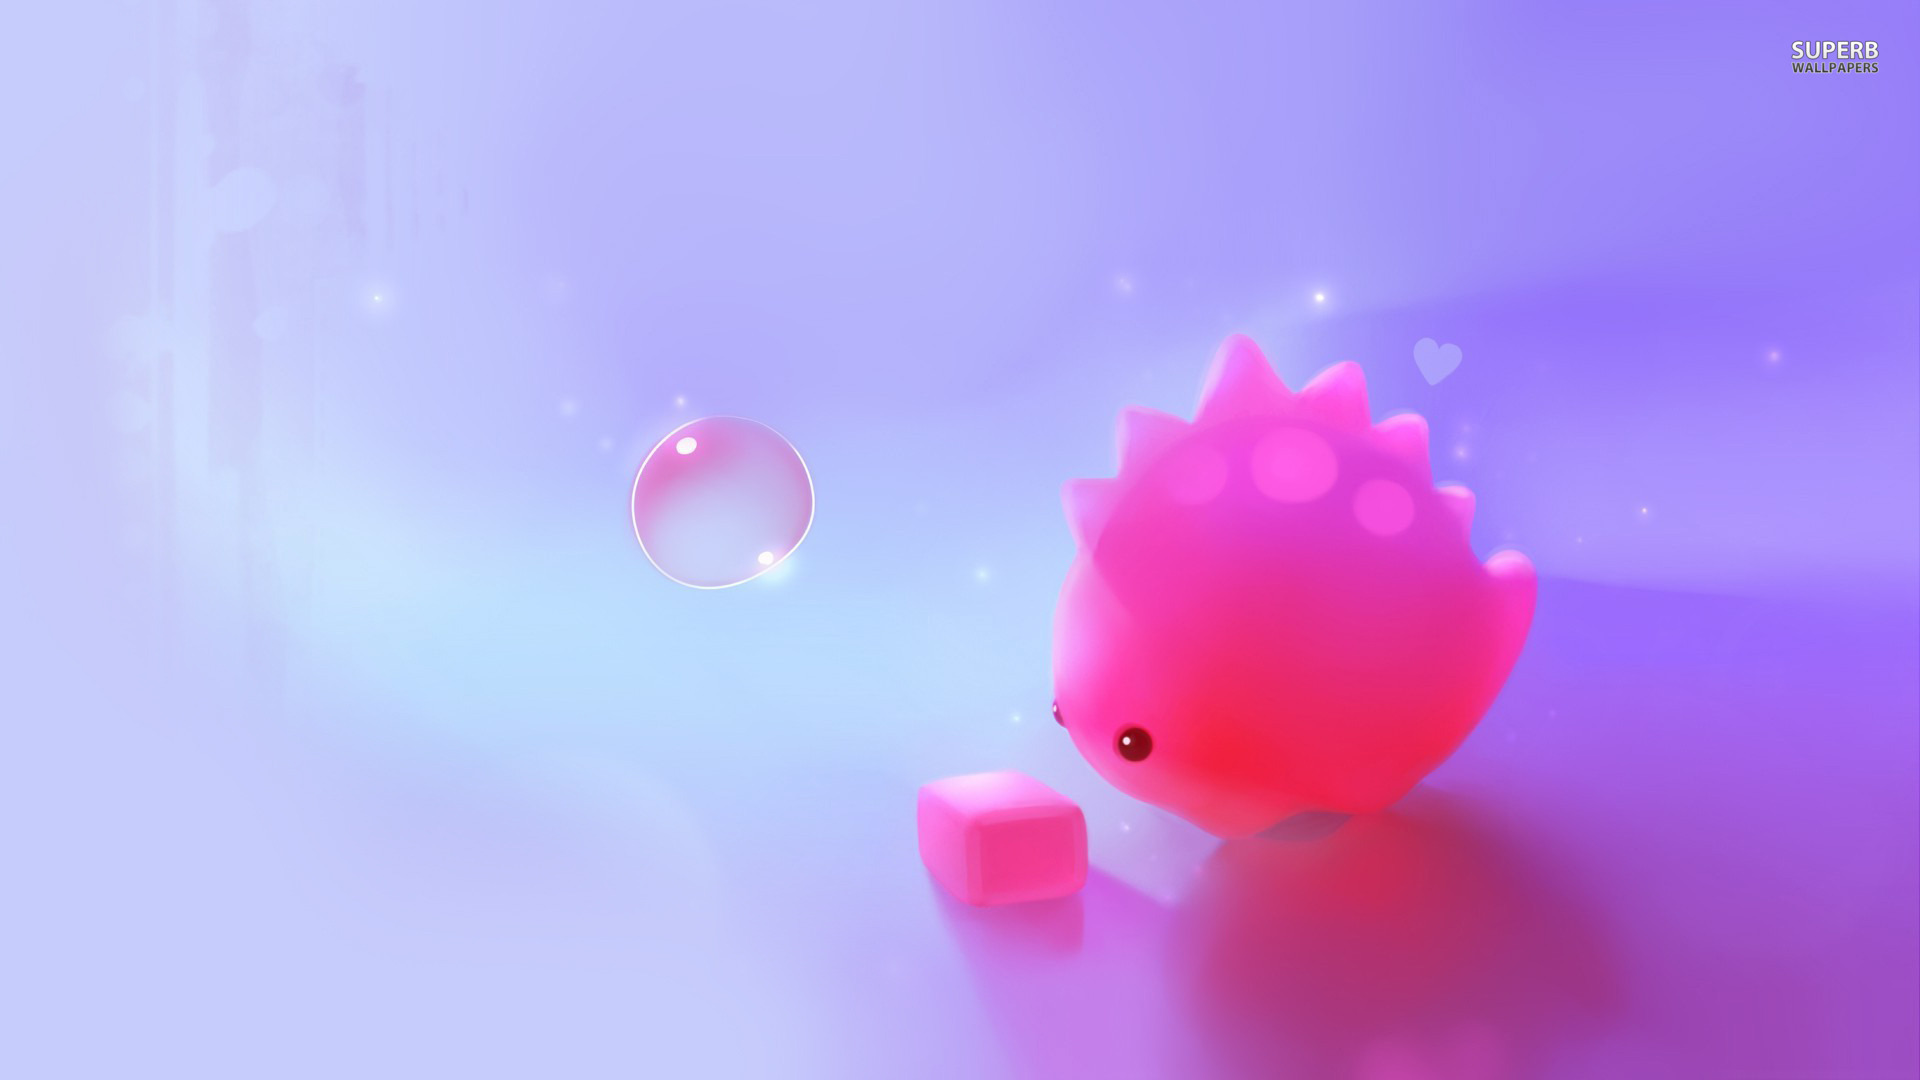 cute black and pink wallpaper 3 desktop wallpaper